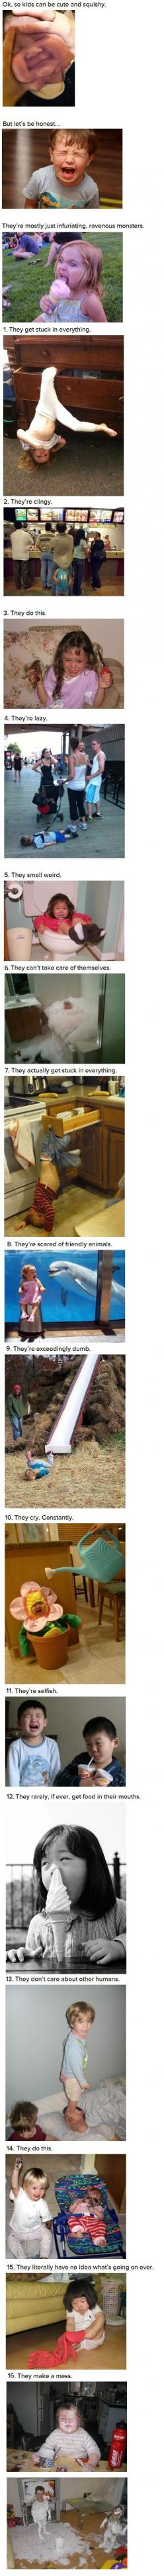 haha: Funny Pictures Of Kids, Funny Things, Funny Kids Pictures, Funny Shit Laughing So Hard, Funny Stuff, Funny Quotes About Kids, Try Not To Laugh Picture, So Funny